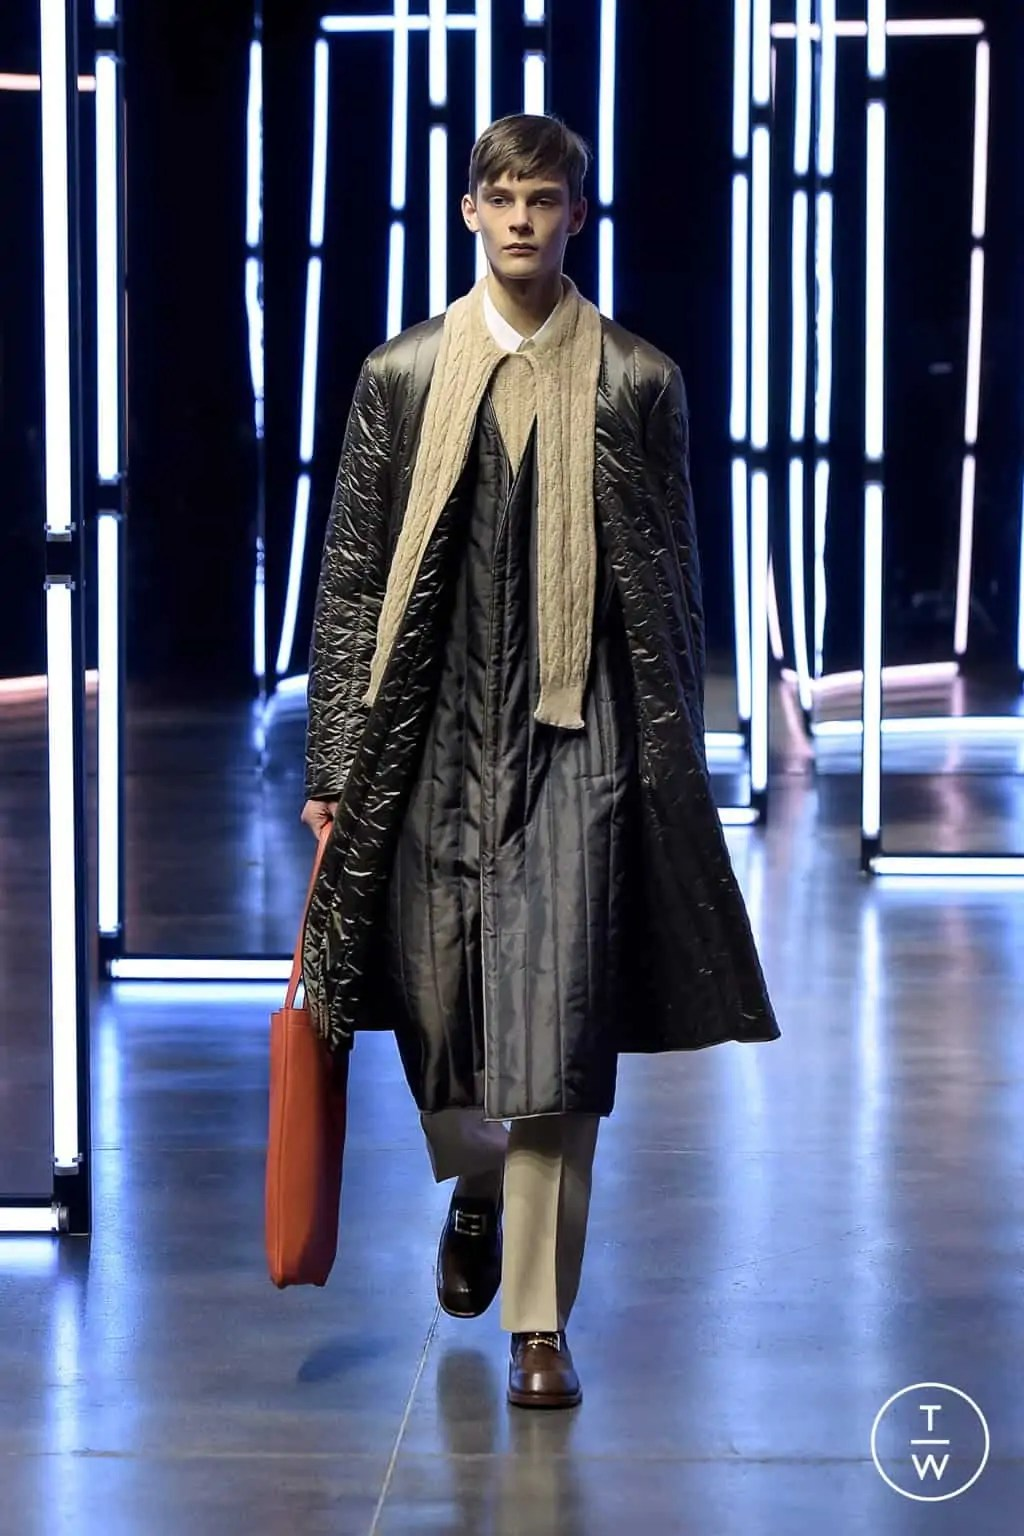 15 FALL/WINTER TRENDS FOR MEN IN 2021 578